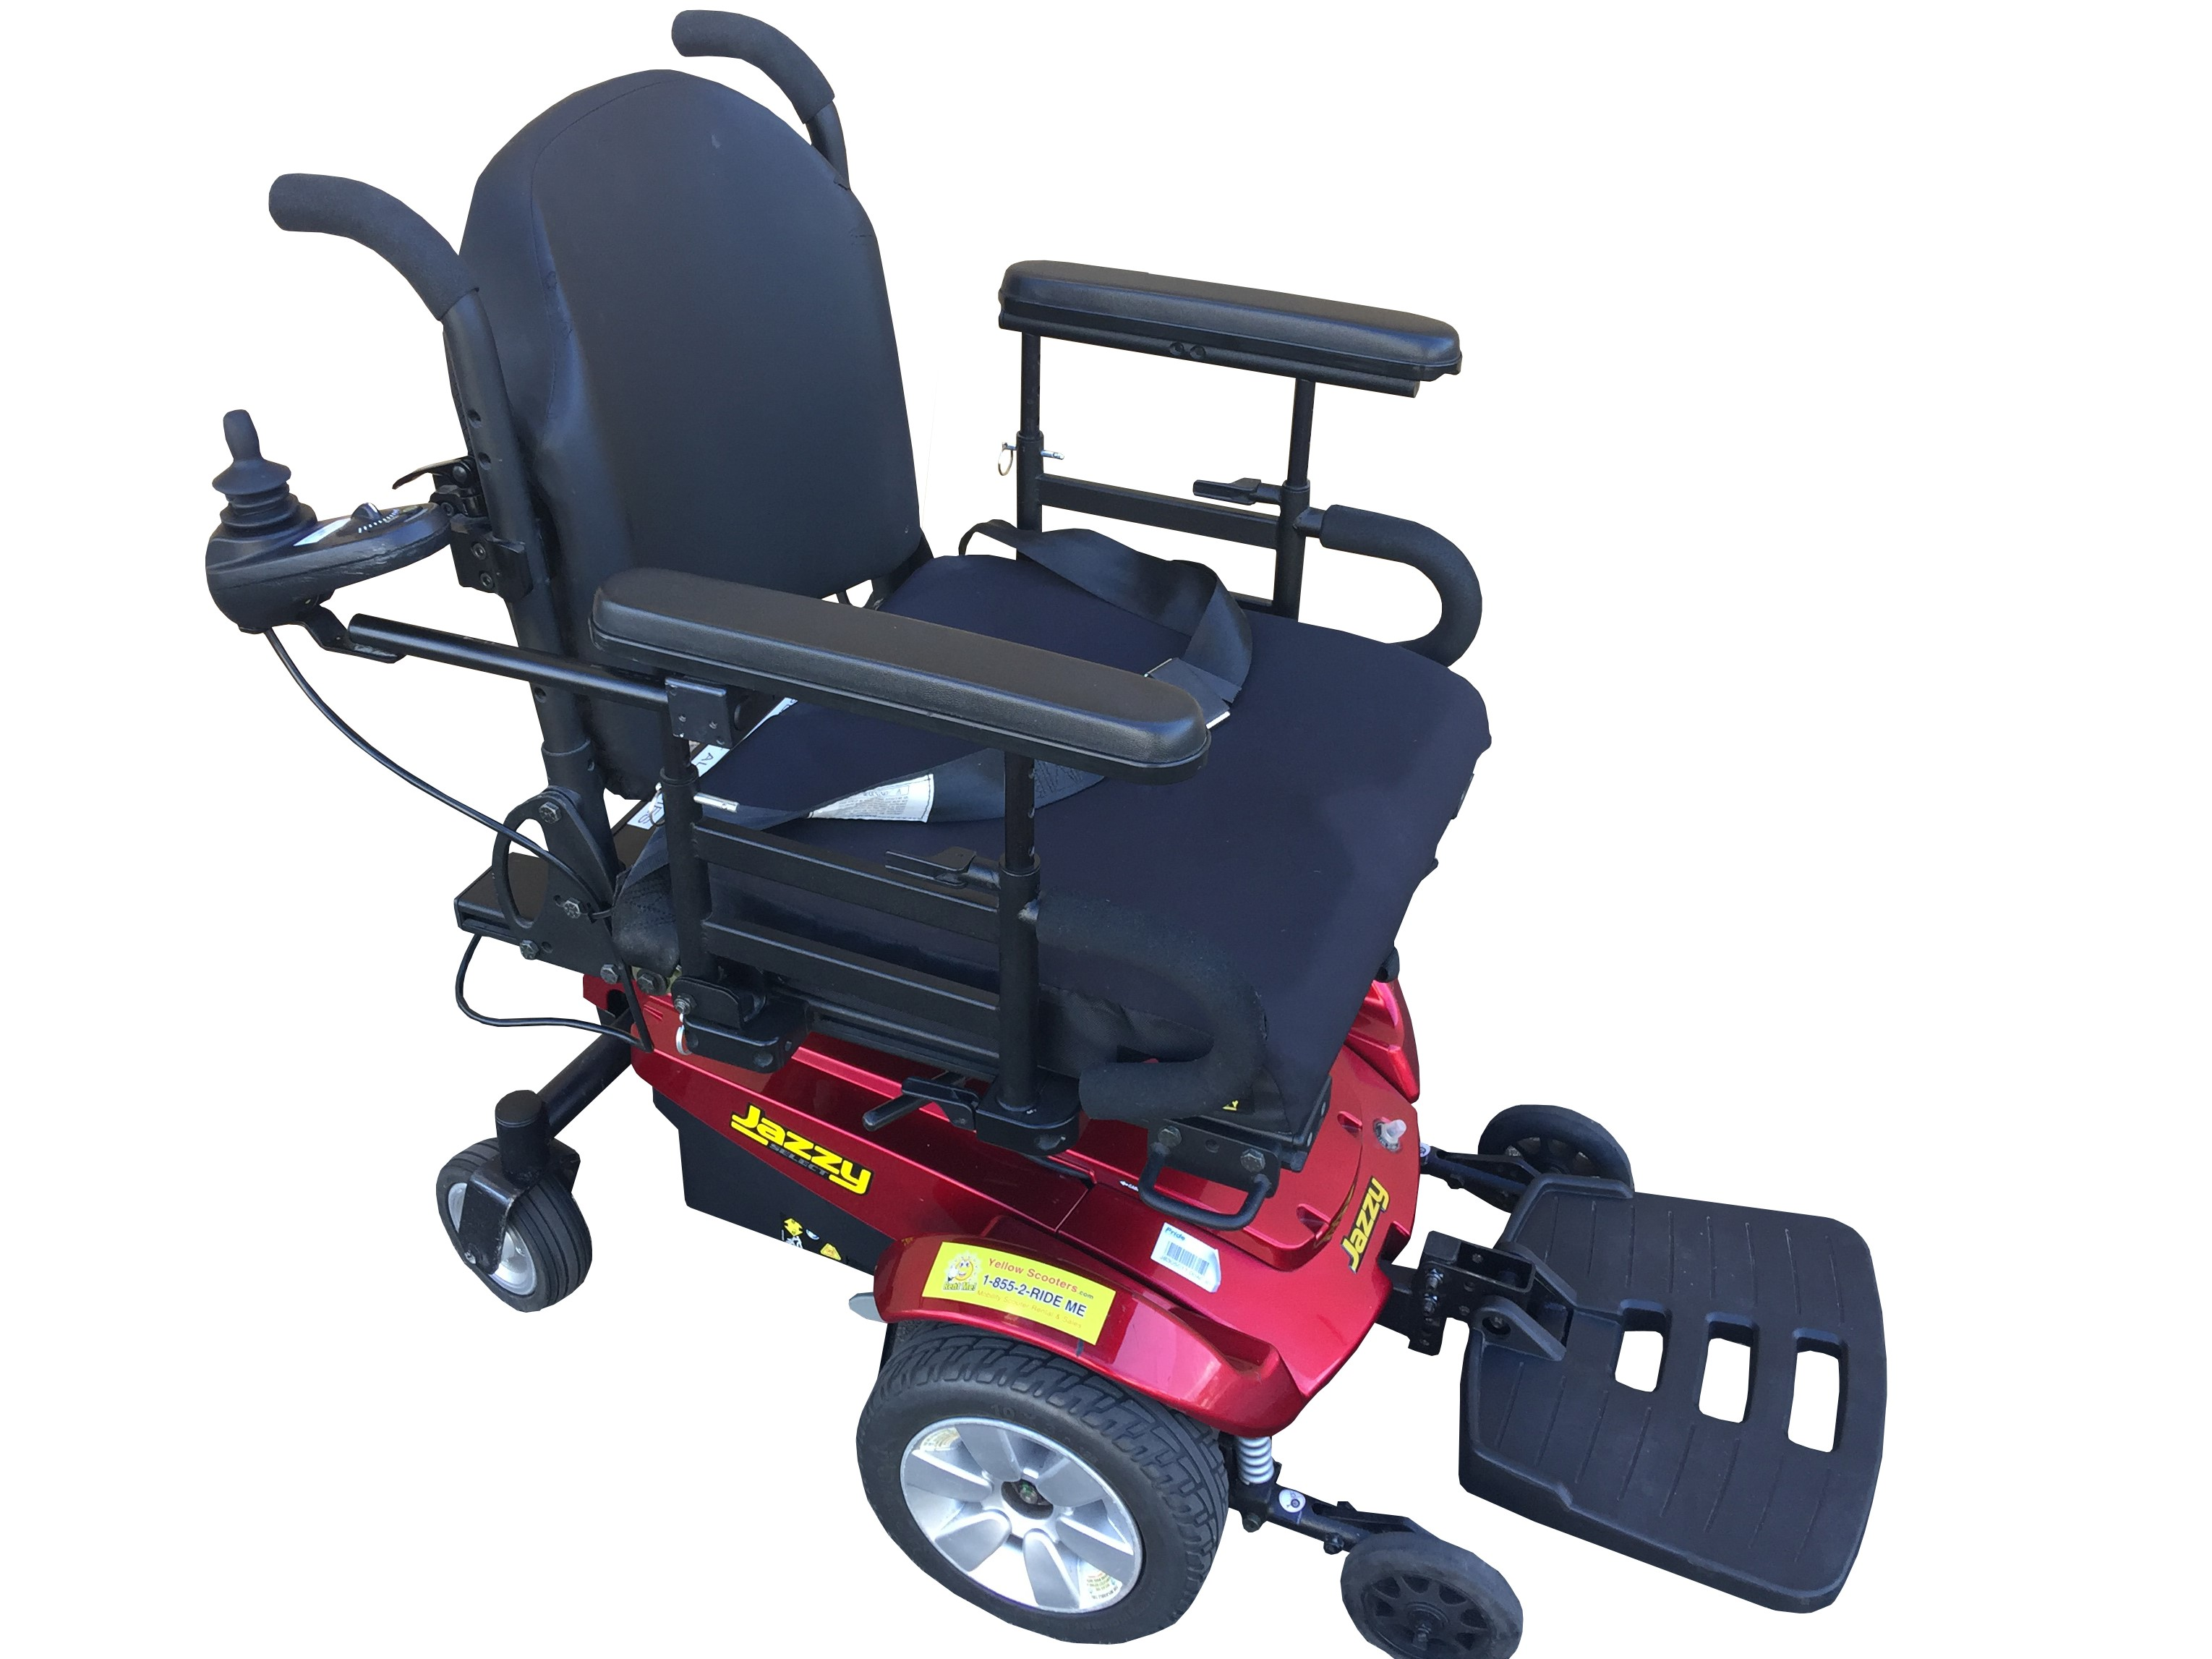 Wheel Chair Rentals Scooter Rental Orlando Disney World Wheelchair Rentals